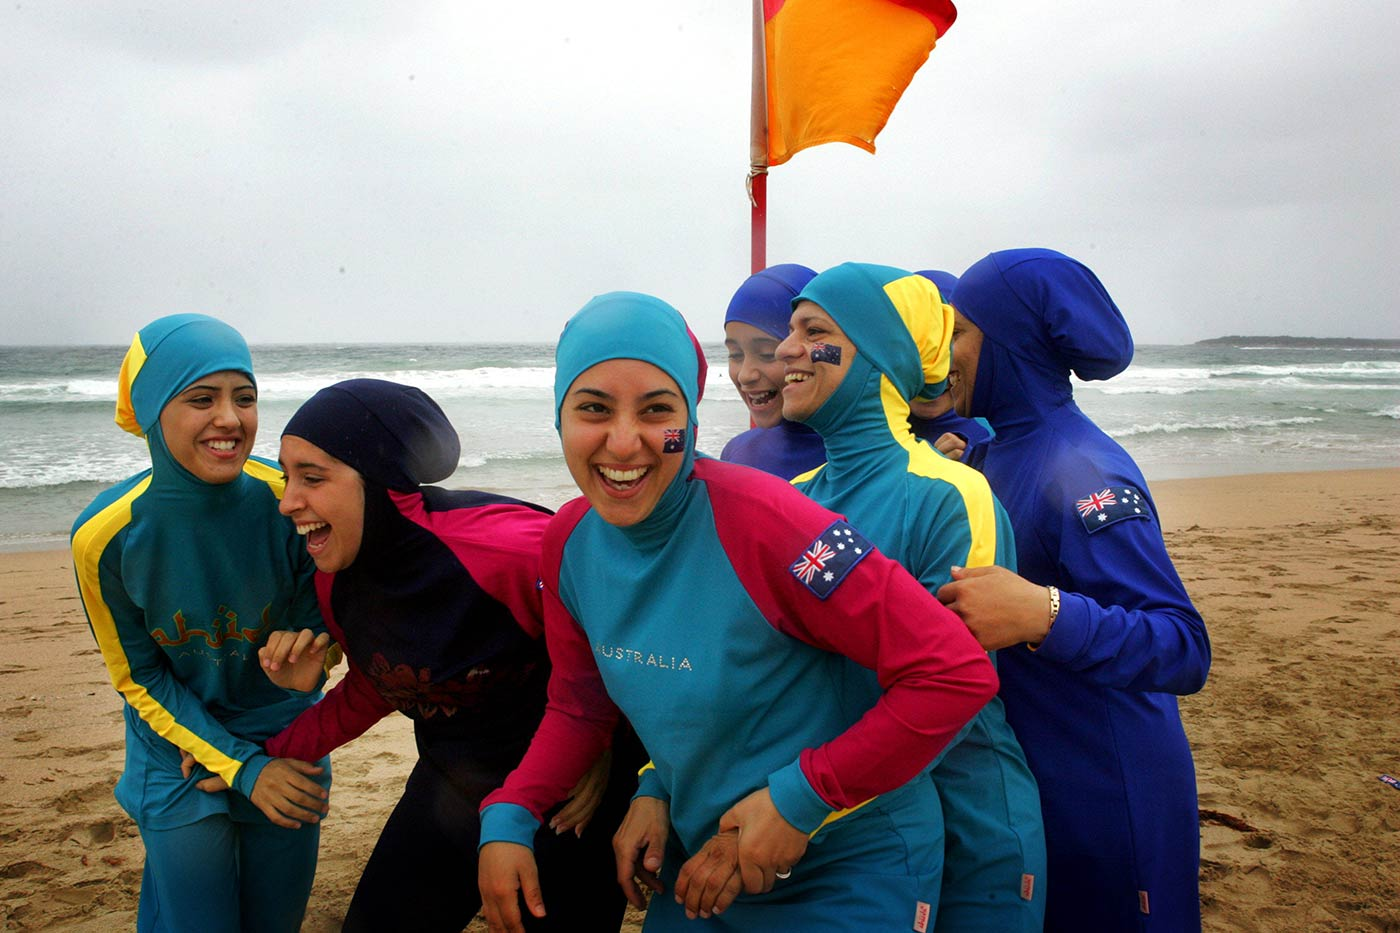 A group of young women of middle-eastern appearance laughing and embracing each other. They are wearing colourful beach wear that has been designed to include the burqa.